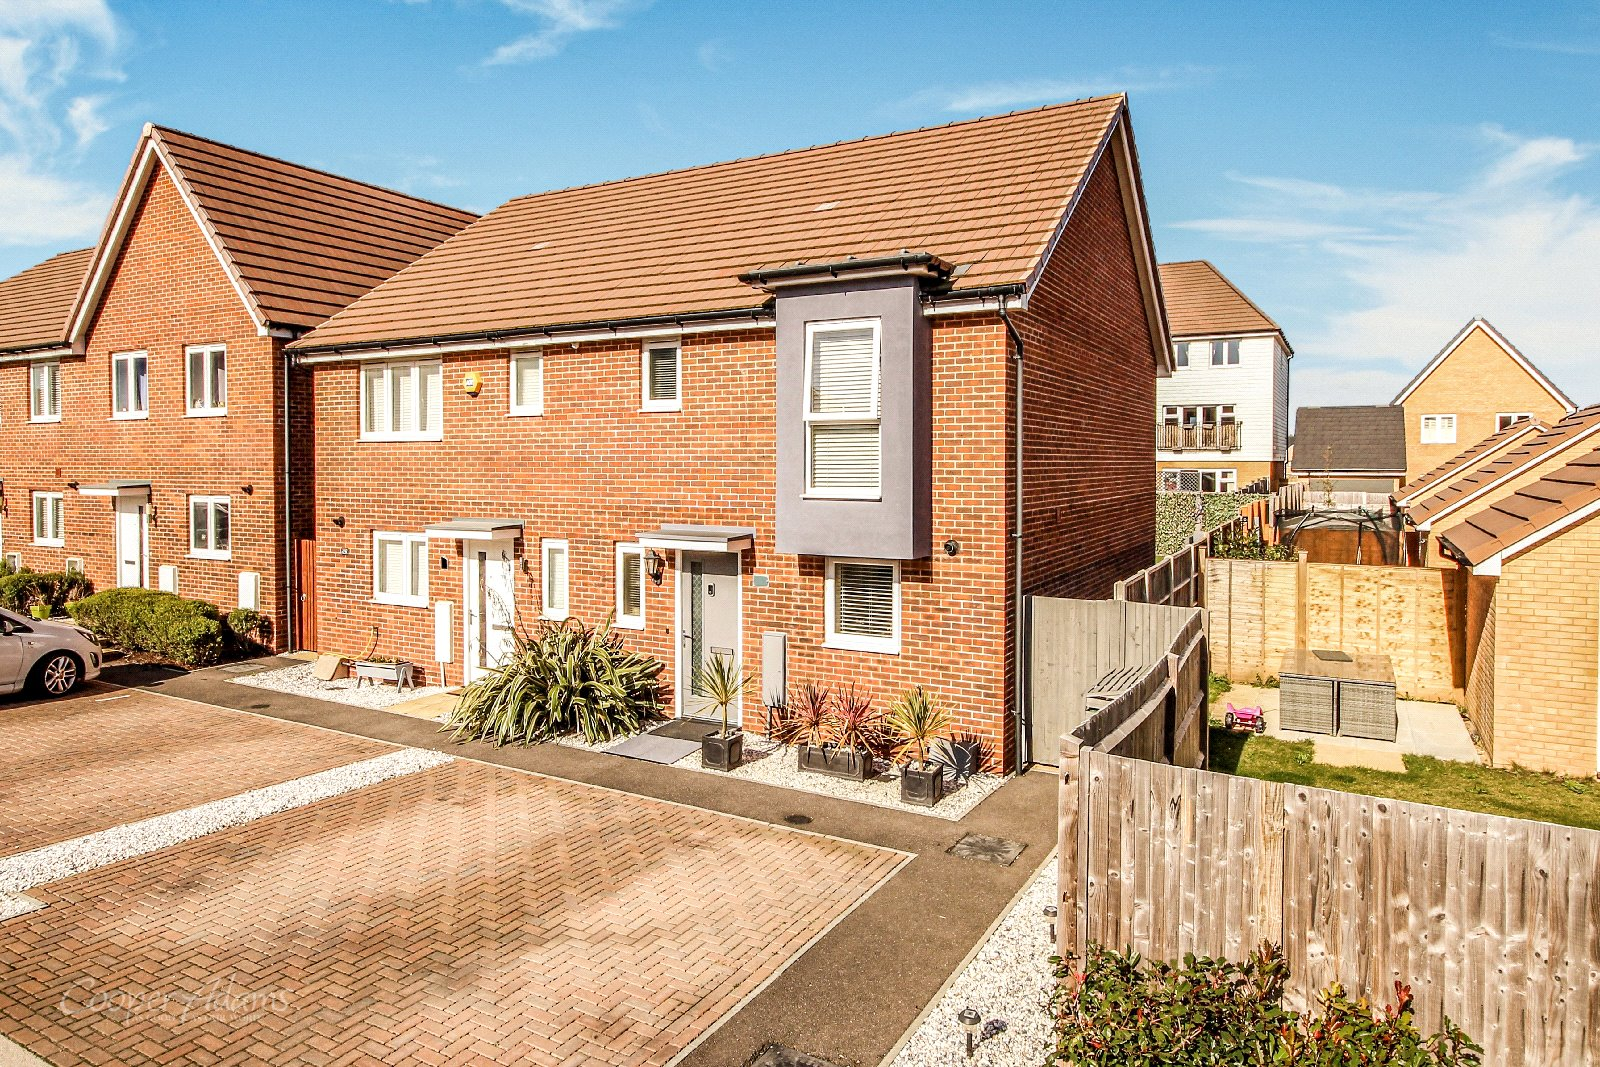 3 bed house for sale in Cooper Drive, Littlehampton, BN17